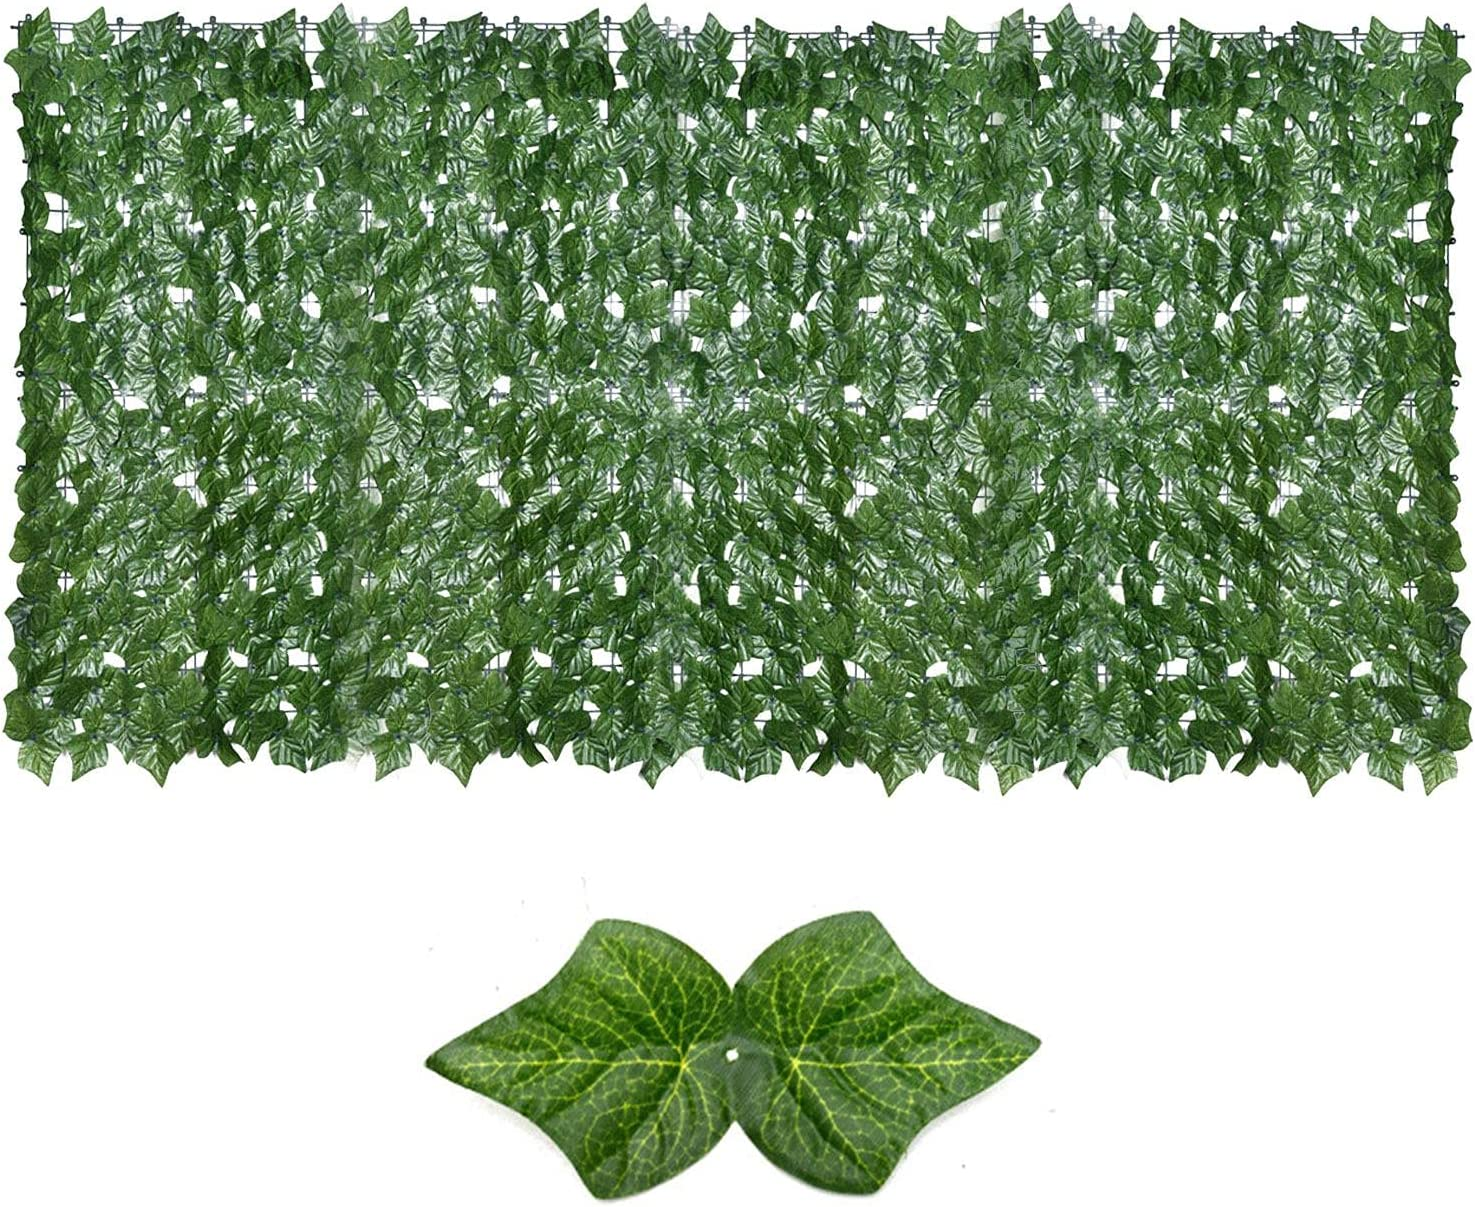 A R 40'' x 118'' Artificial Max 40% OFF Charlotte Mall Green Plan Panels Hedge Leaf Topiary